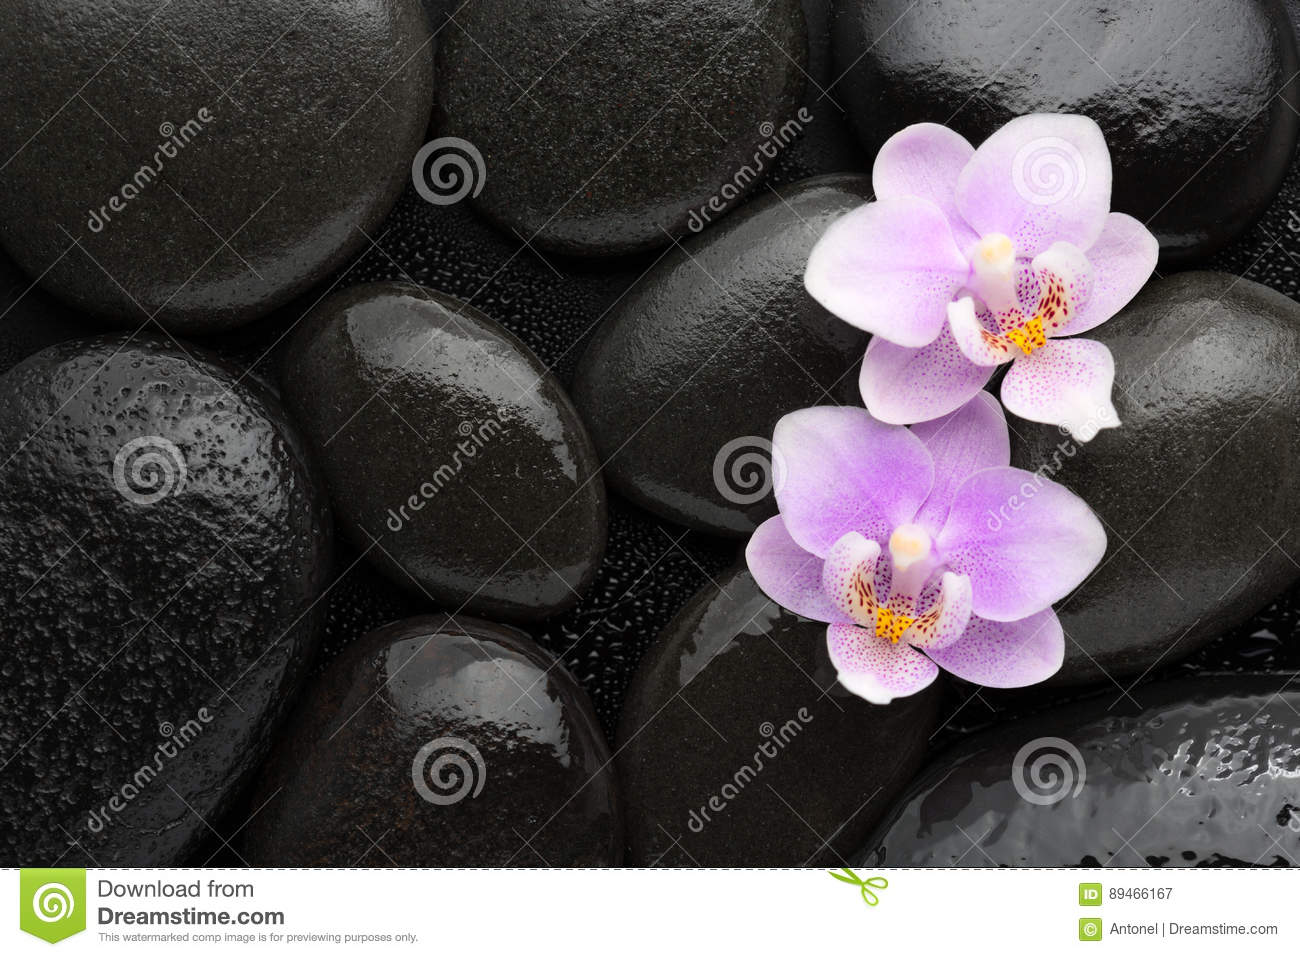 Two light pink orchids lying on wet black stones. Viewed from above. Spa concept